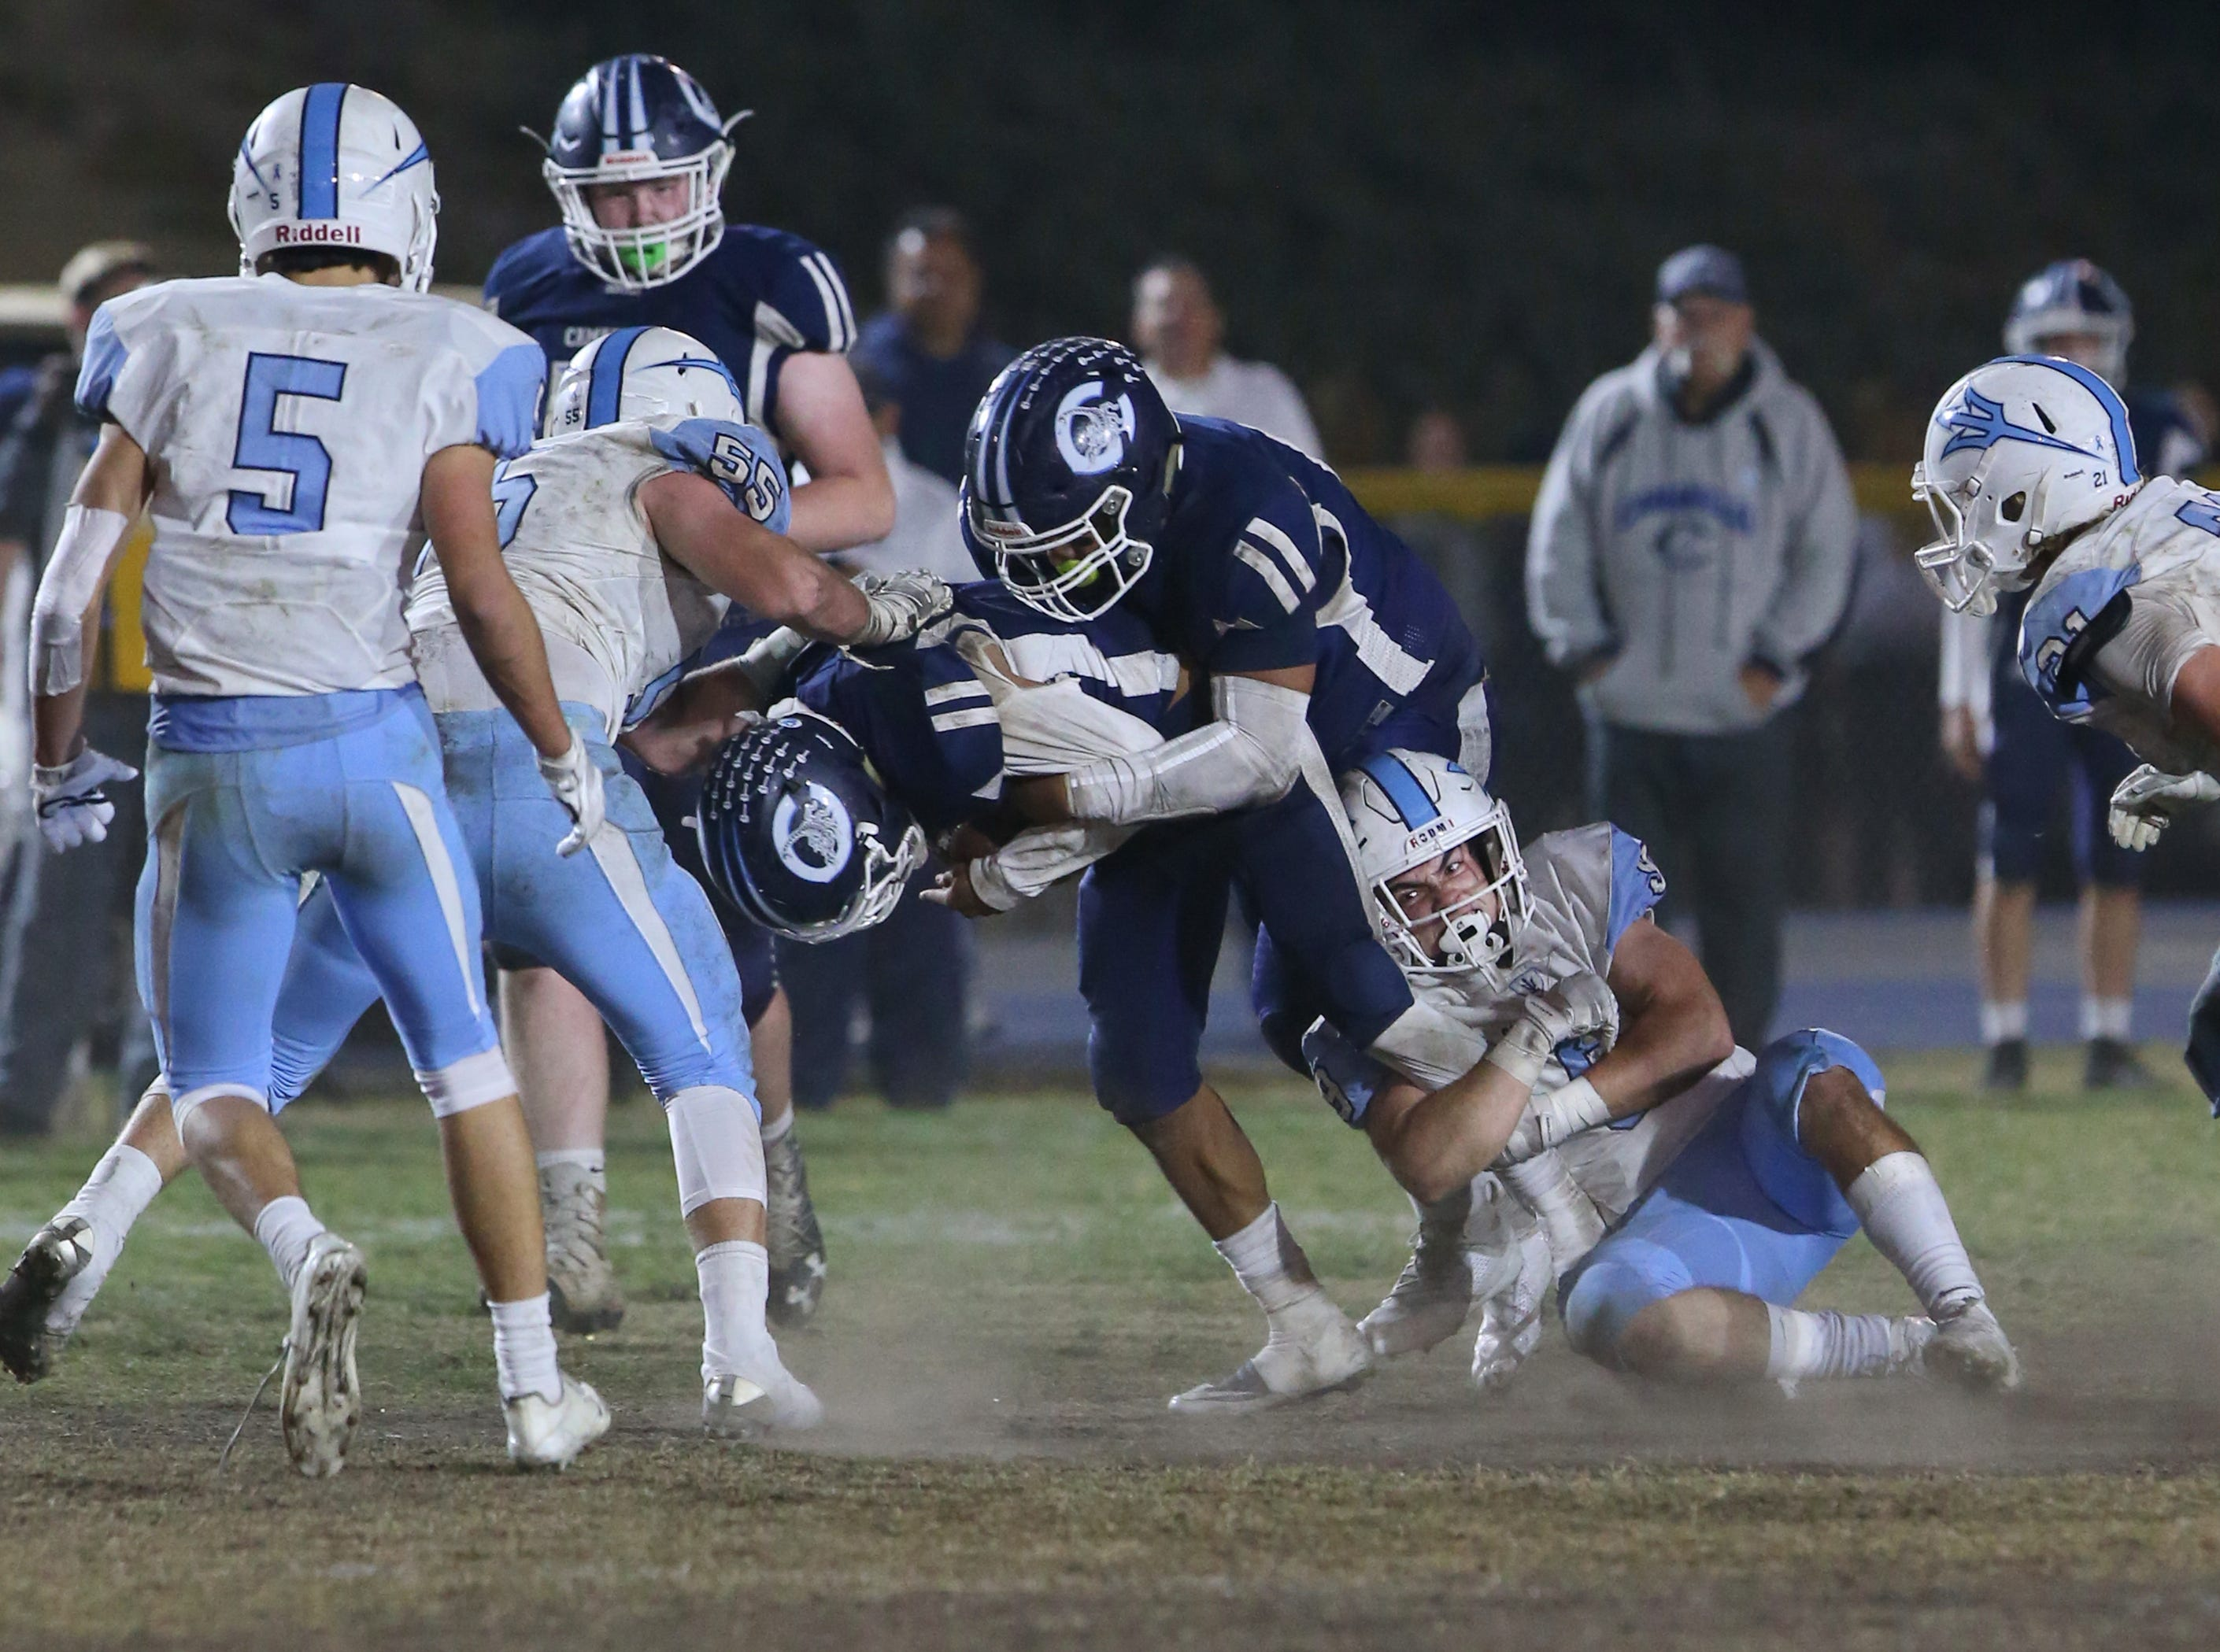 Corona del Mar's Luke Fisher holds onto Camarillo's Jesse Valenzuela leg as he makes the tackle during their CIF-SS Division 4 semifinal game Friday night.